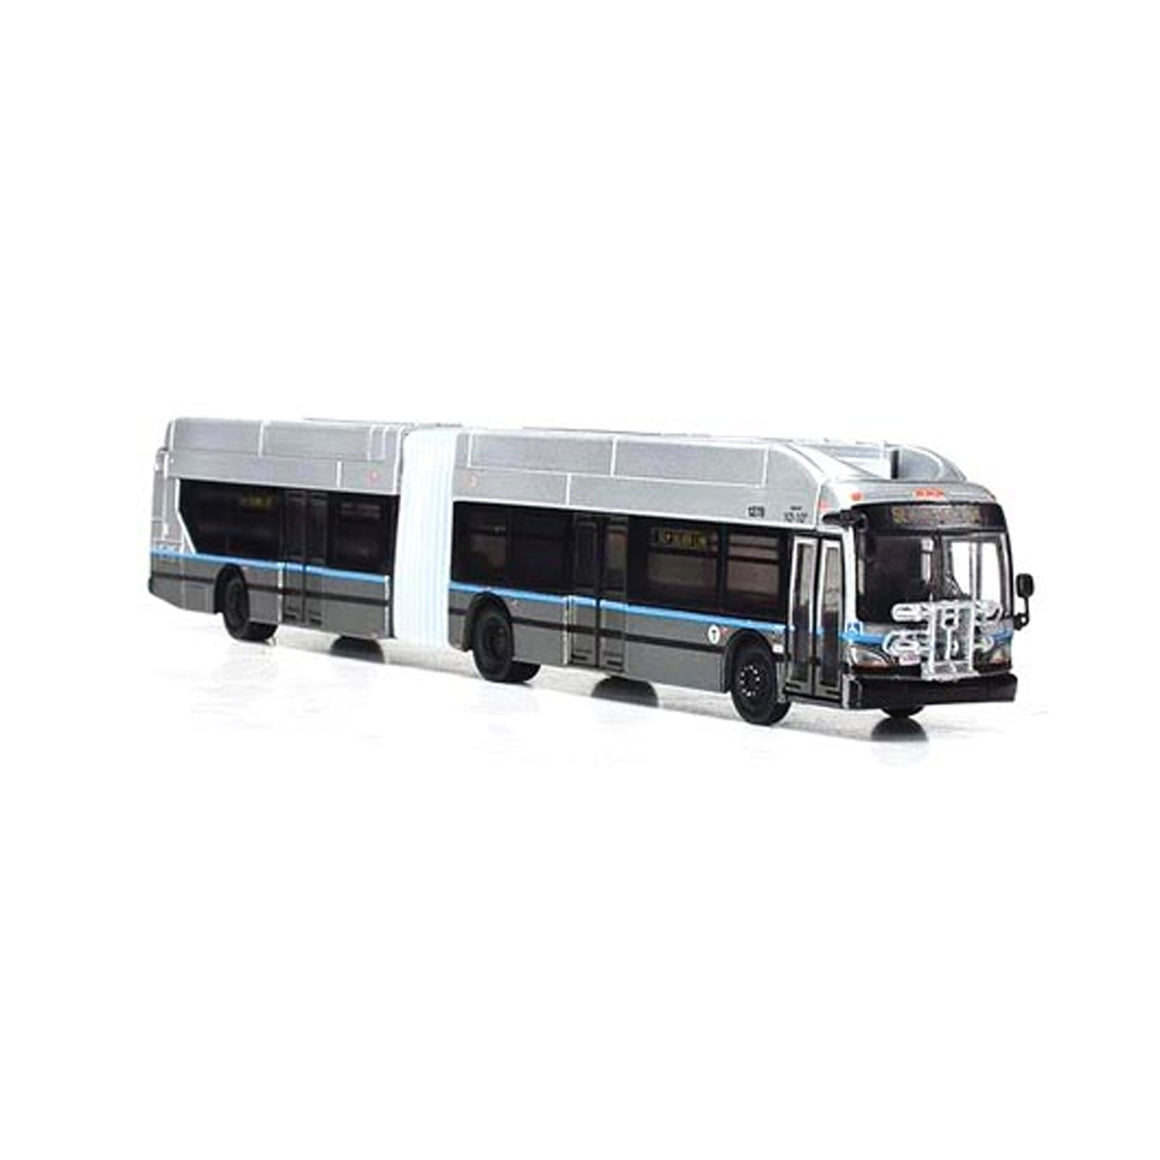 HO Scale: New Flyer Excelsior Articulated Bus - Boston MTA Silver Line